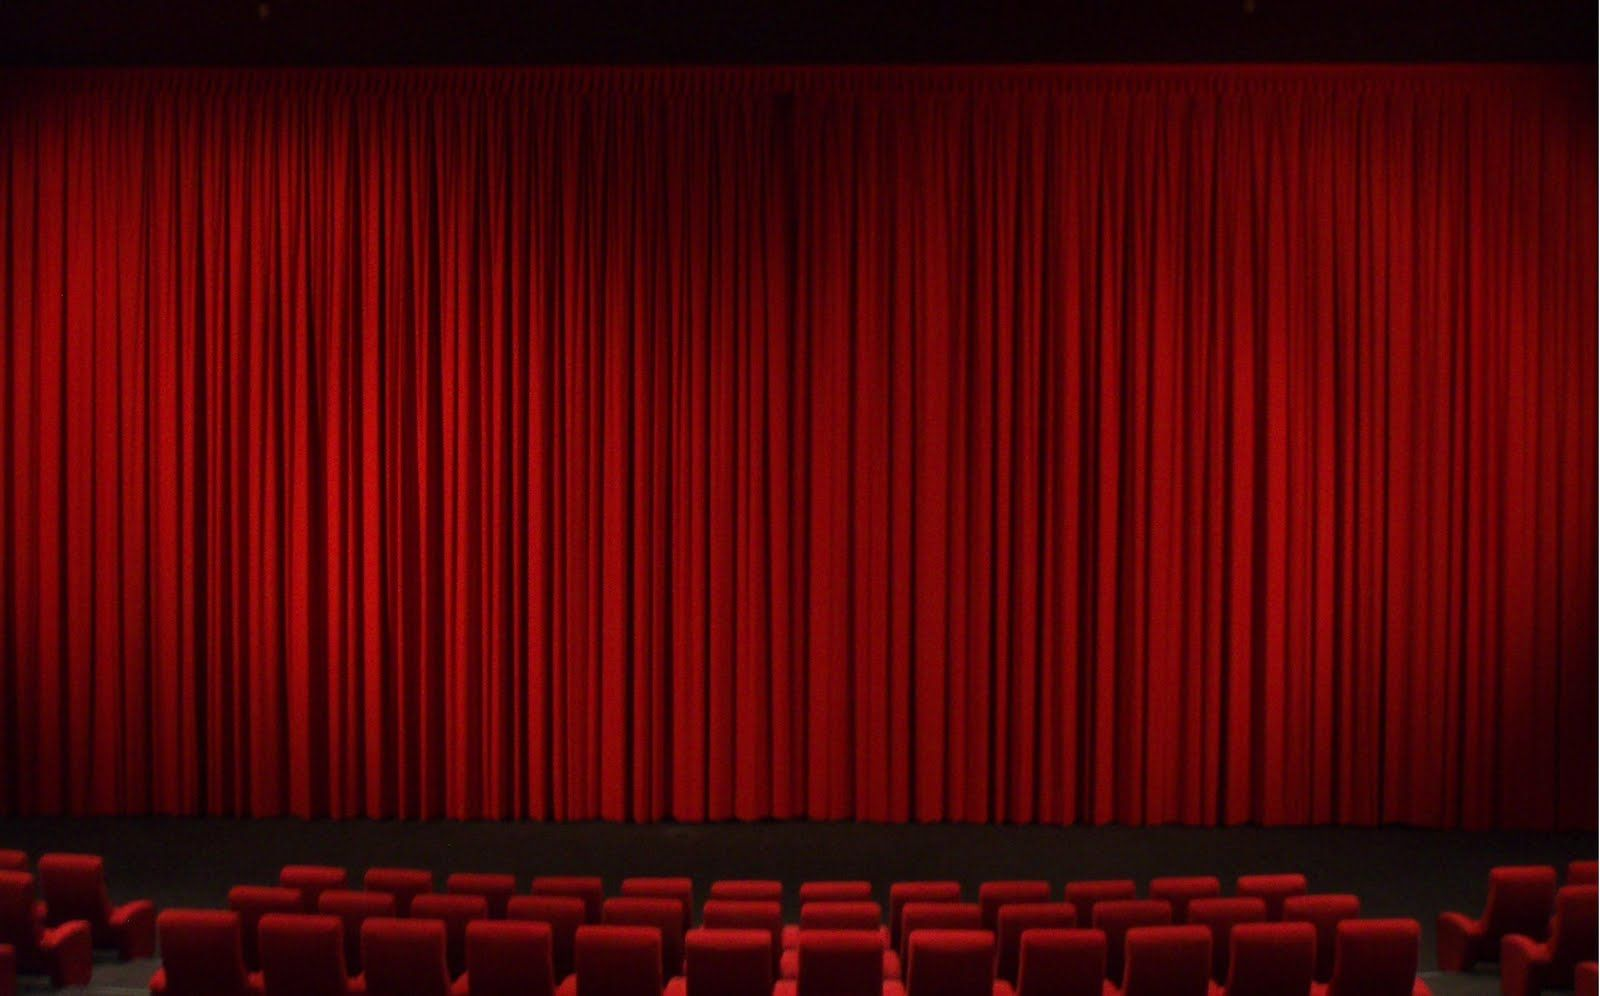 stagecurtaintracks - Stage curtains for Theater Show – home ...